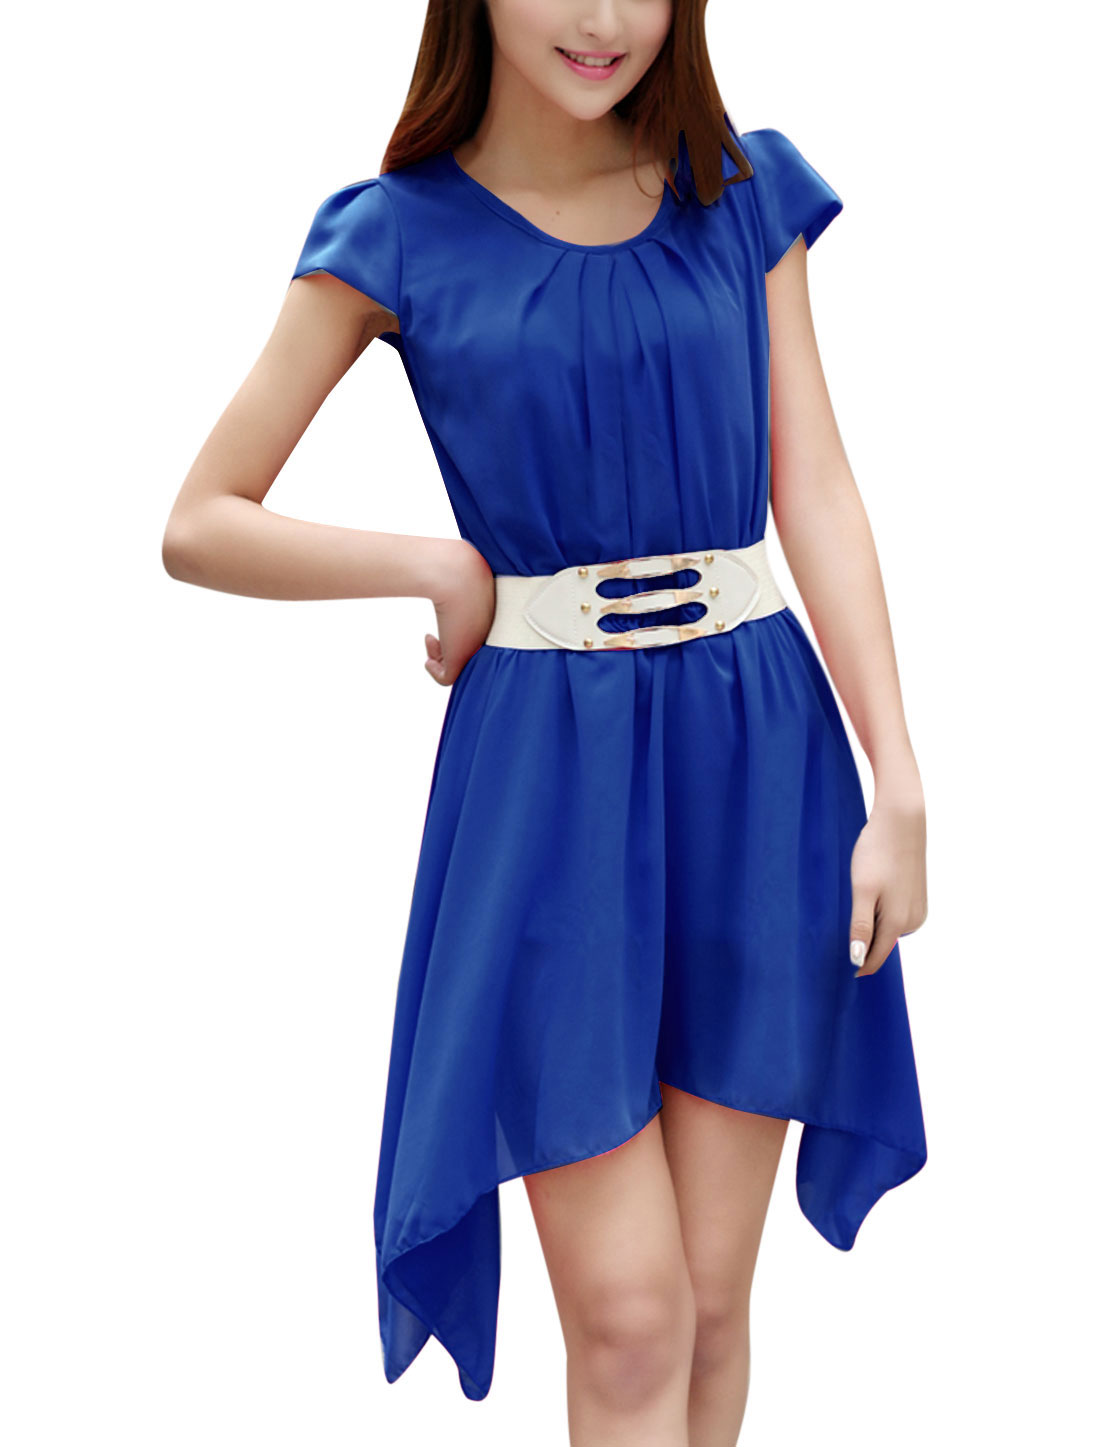 Lady Stretchy Waist Low High Hem Blouson Dress w Waist Belt Blue XS